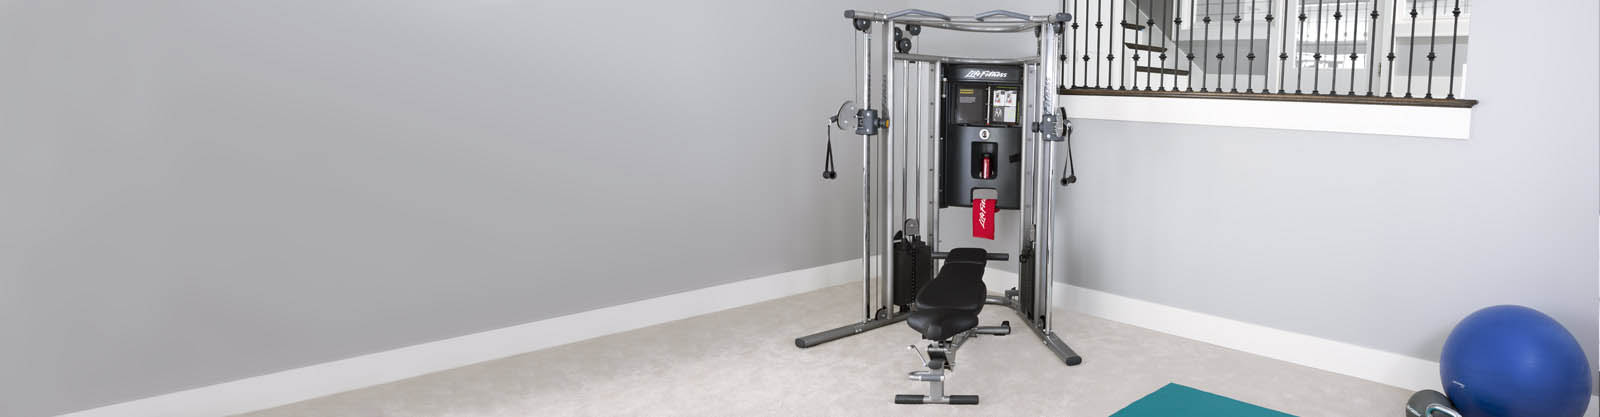 HomeGym-Hero-2.jpg